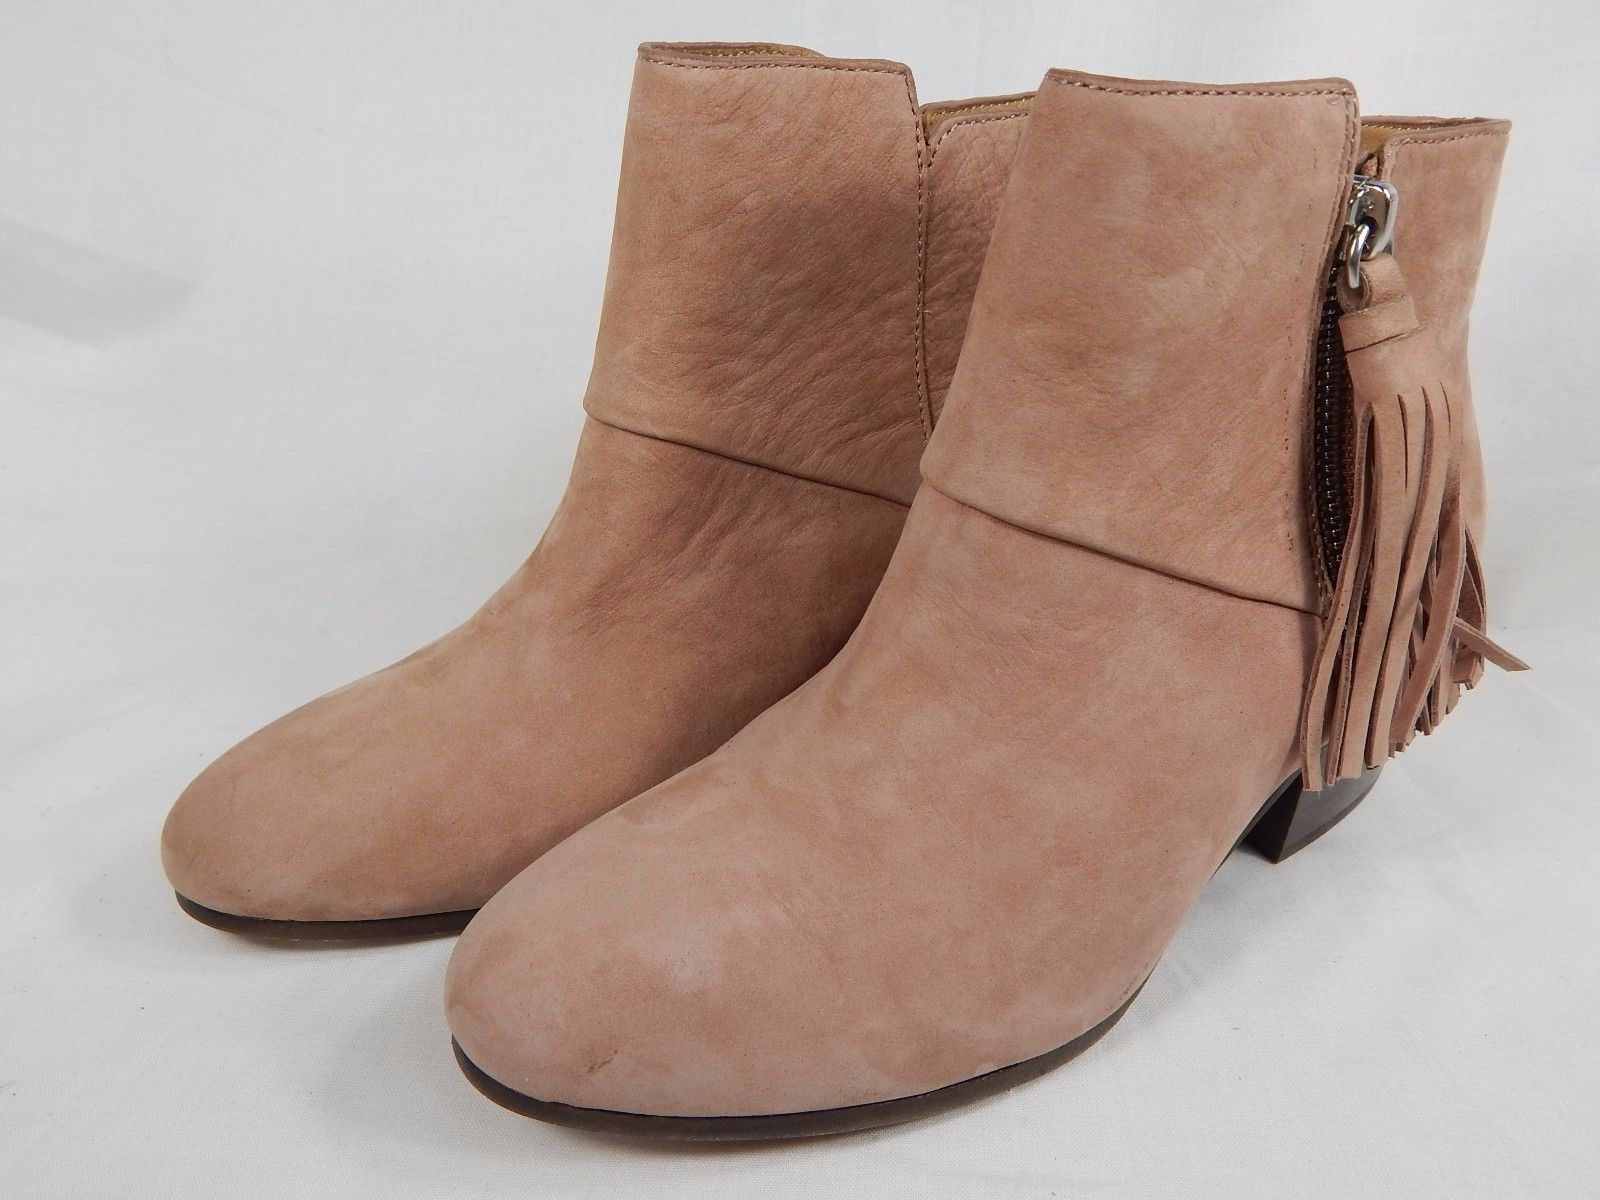 Coach Pricilla Ankle Suede Booties Women's Size US 5 M (B) Pink $268